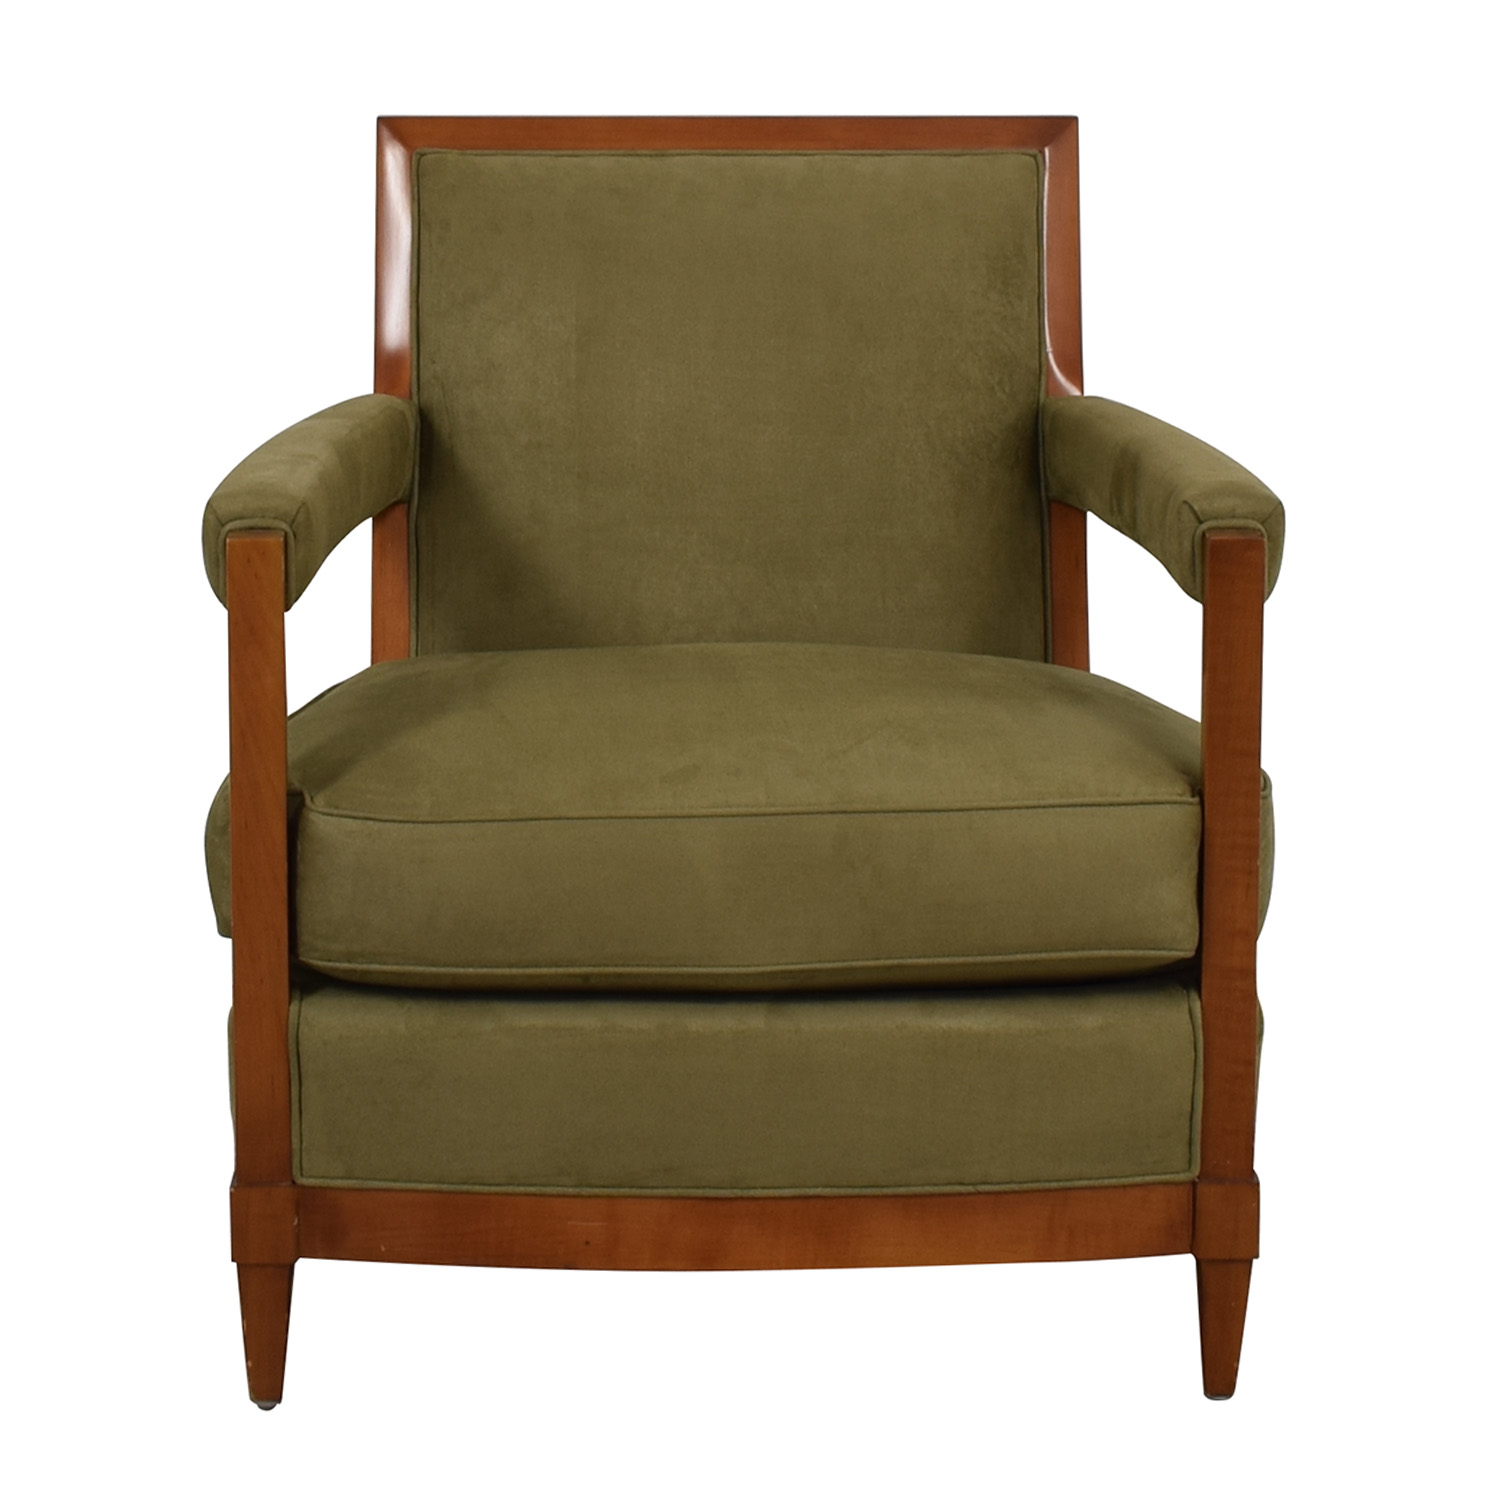 Furniture Masters Furniture Masters Sage Green Micro-Suede Accent Chair for sale